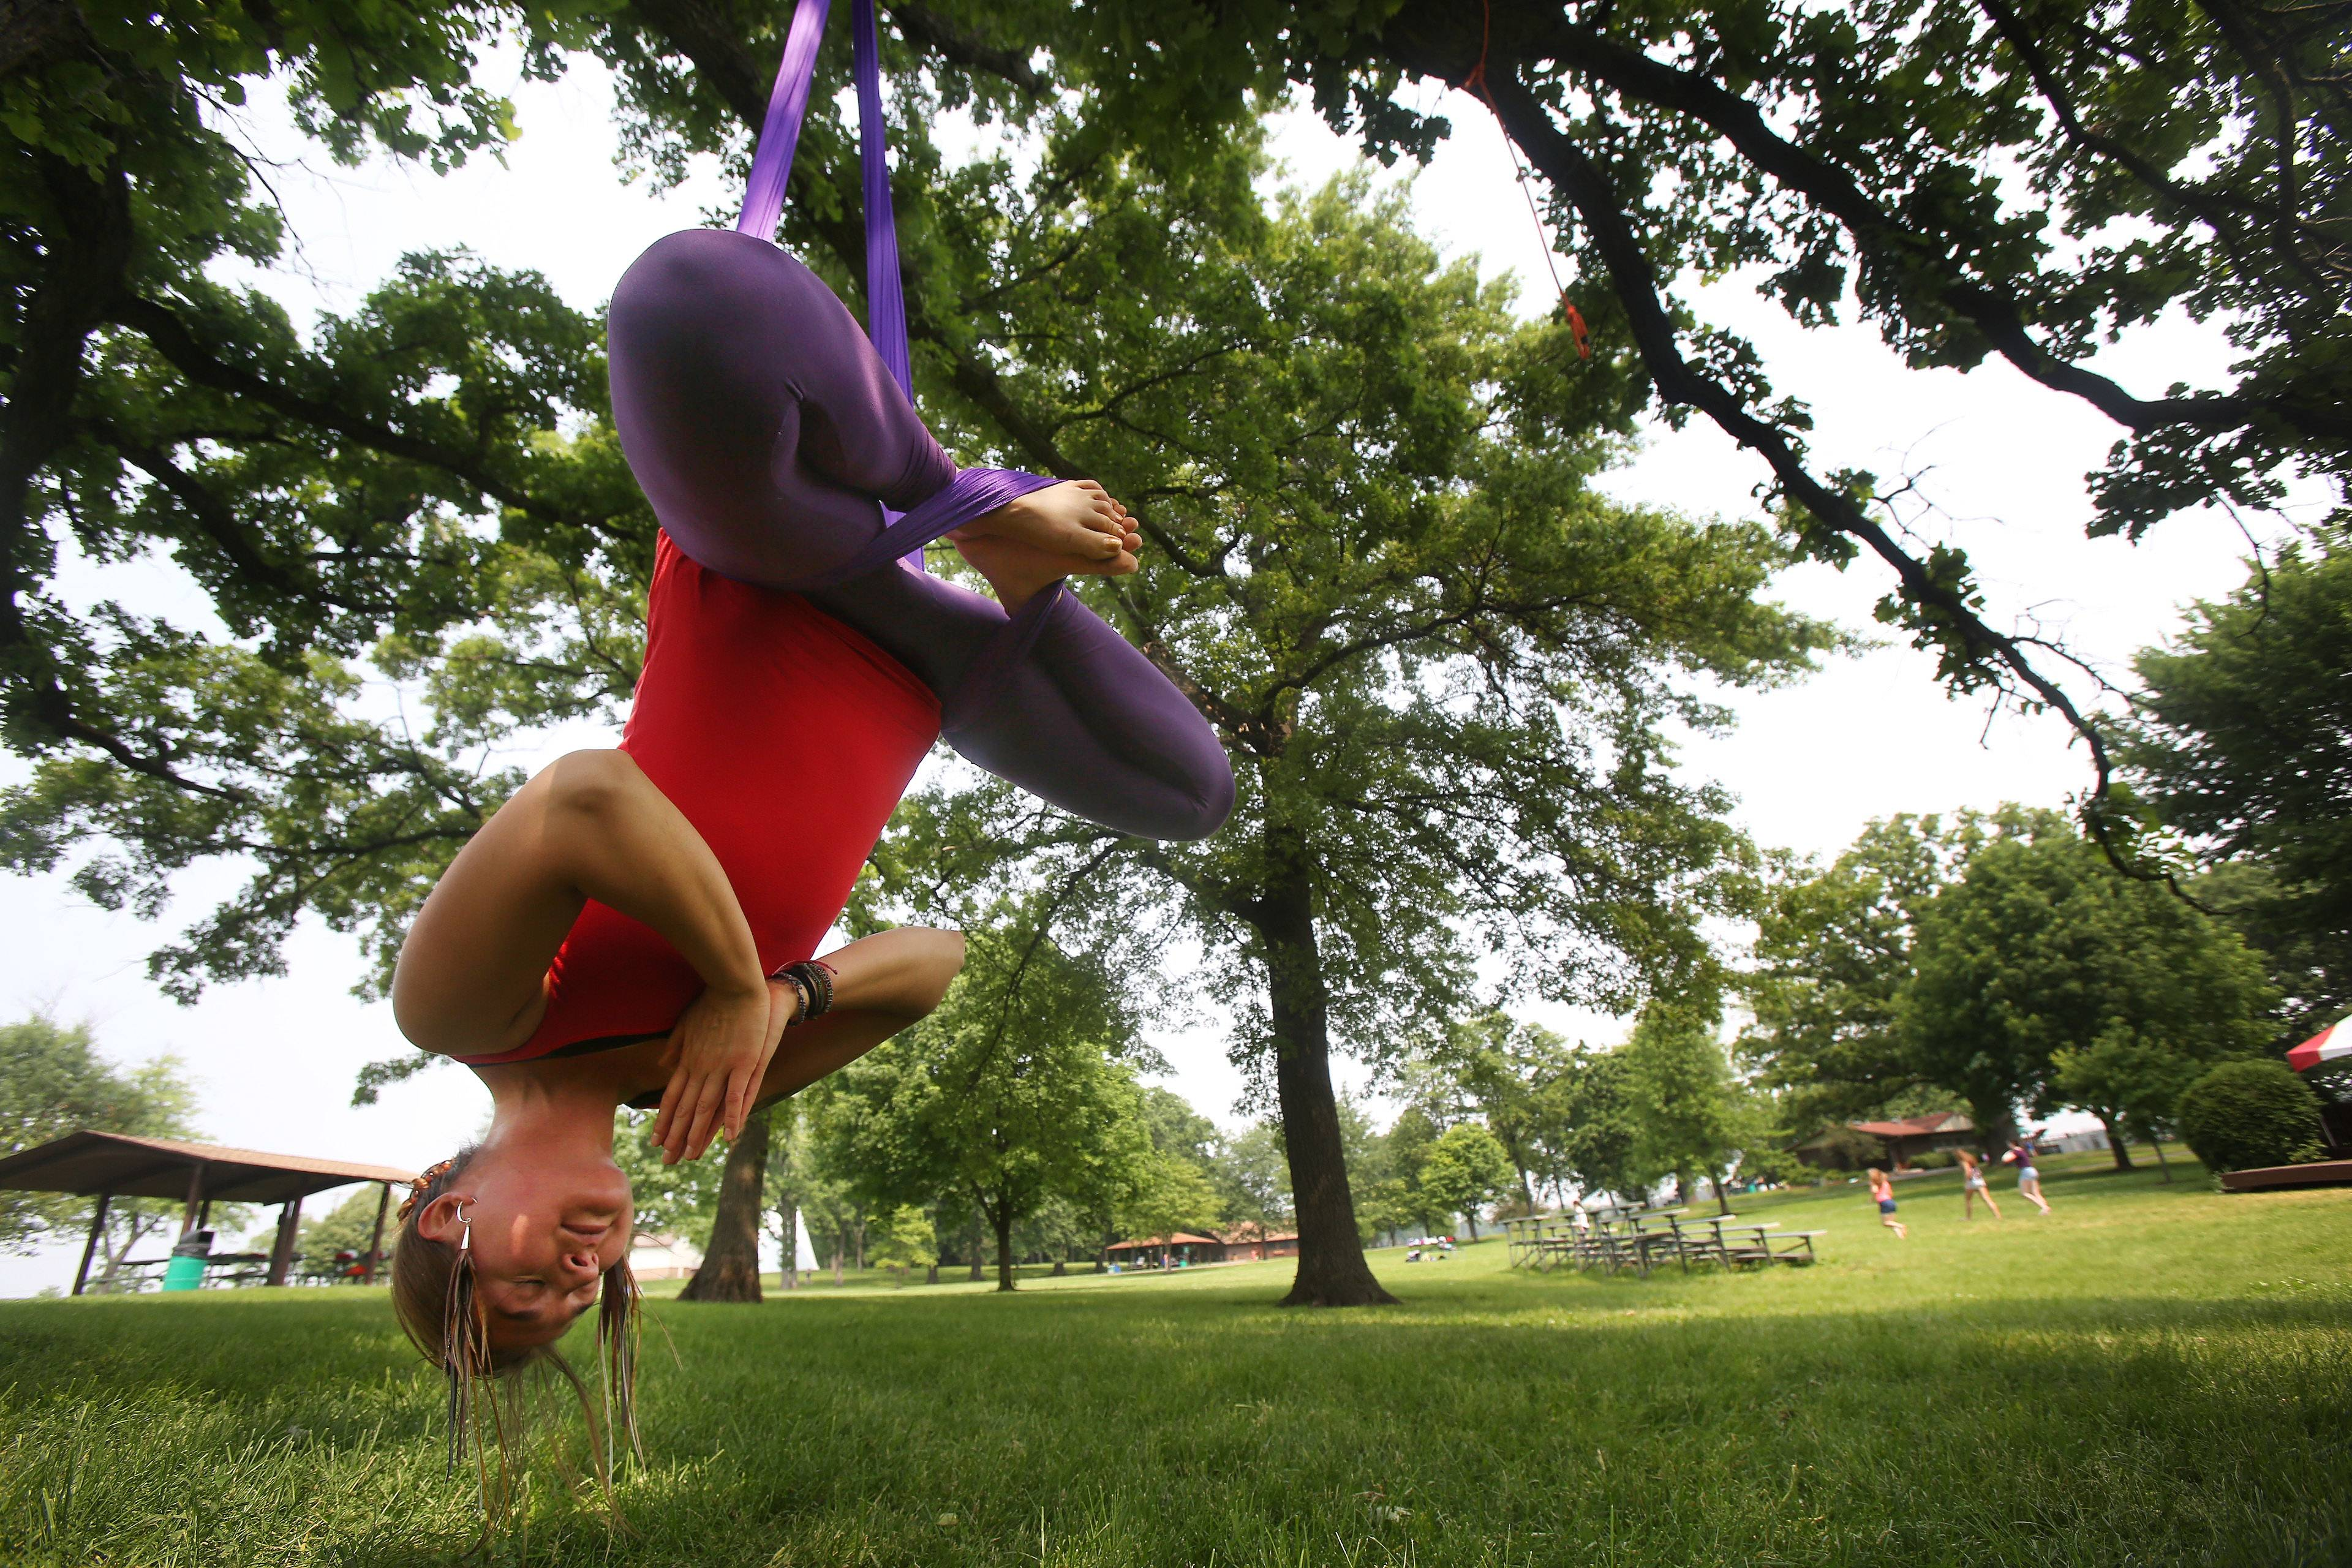 International aerial yoga instructor Holly Johnson of Hoffman Estates will teach four-week aerial yoga classes in Lake Zurich's Paulus Park starting June 16. Johnson, of Aviana Yoga, is working with the Village of Lake Zurich Park & Recreation Department to offer the classes.